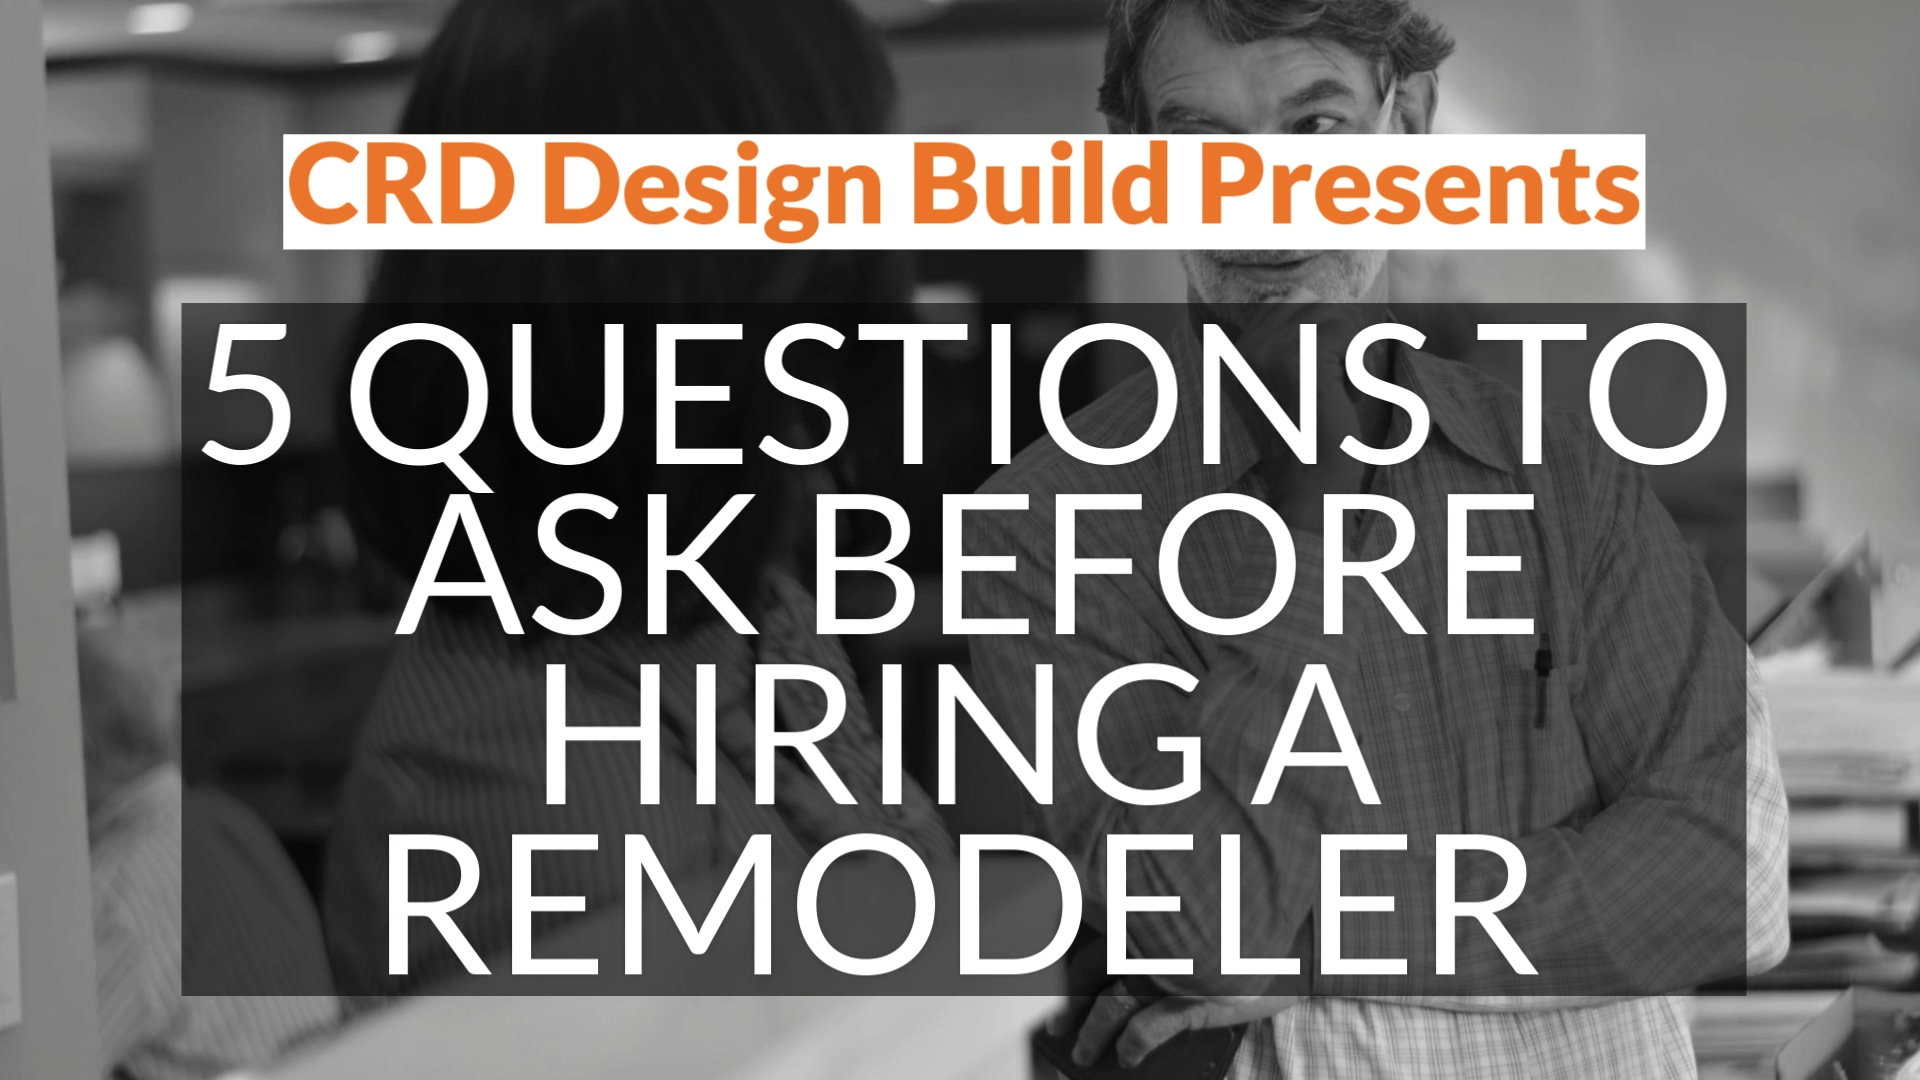 5 Questions to Ask Before Hiring a Remodeler - Widescreen